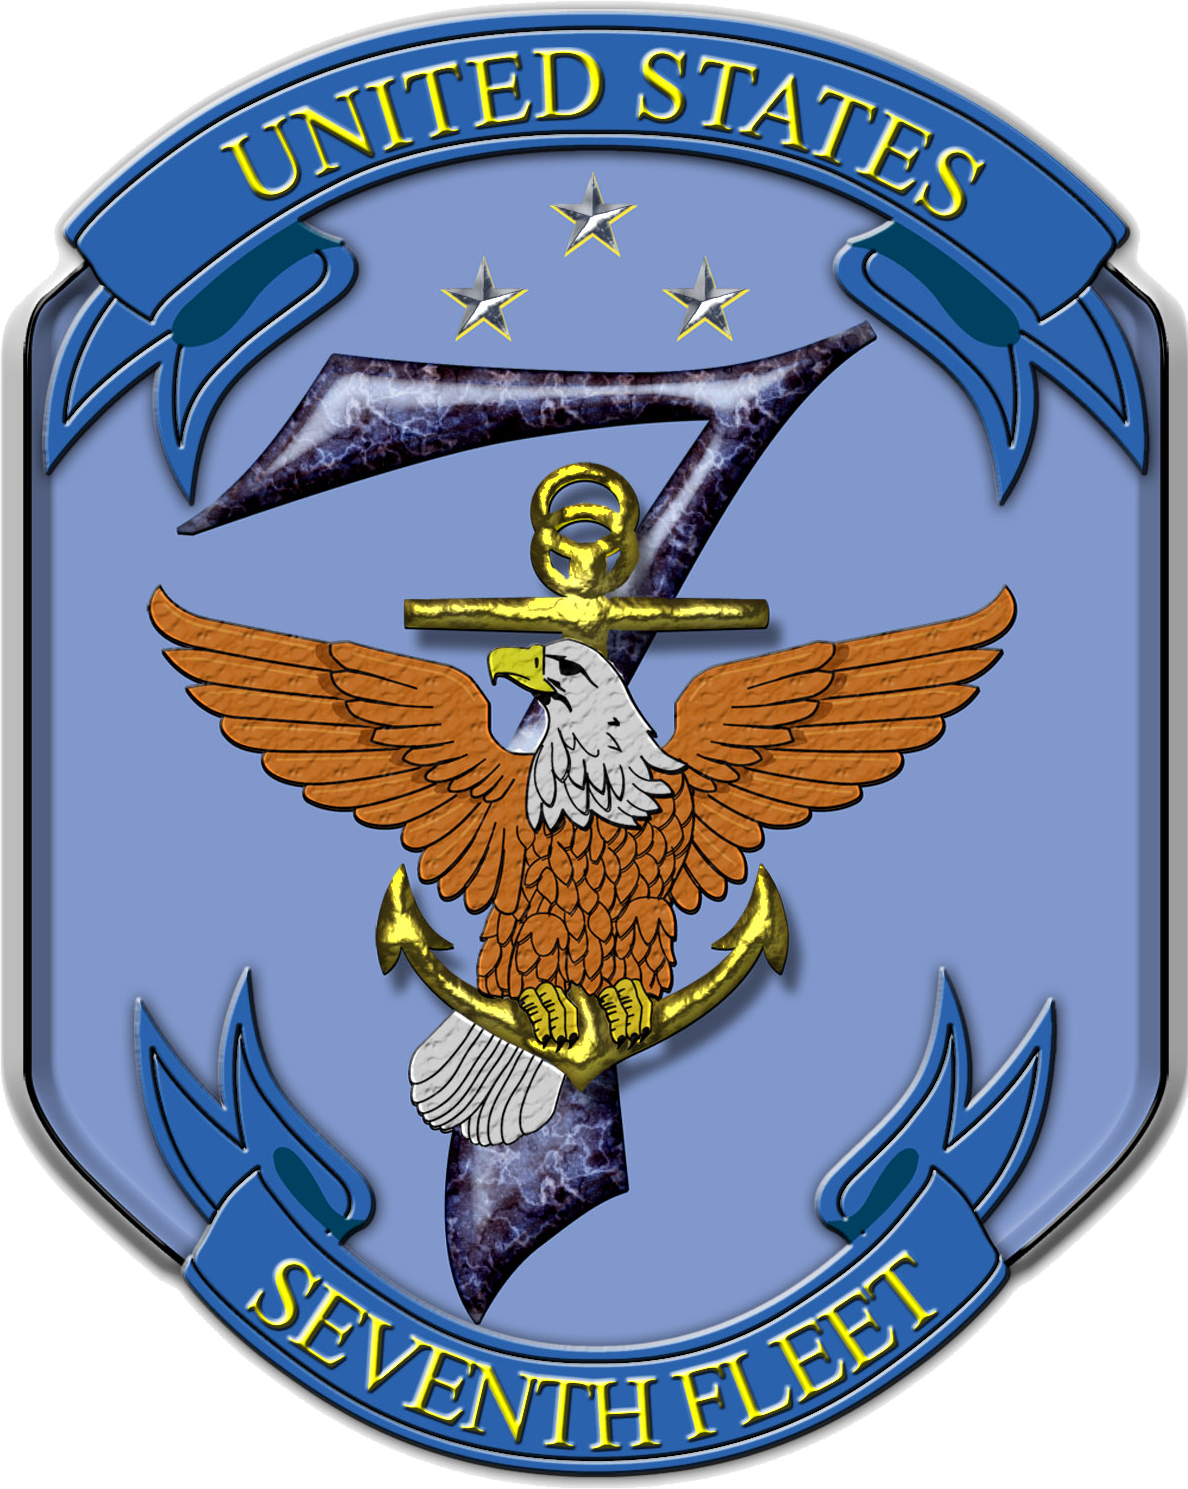 United States Seventh Fleet - Wikipedia